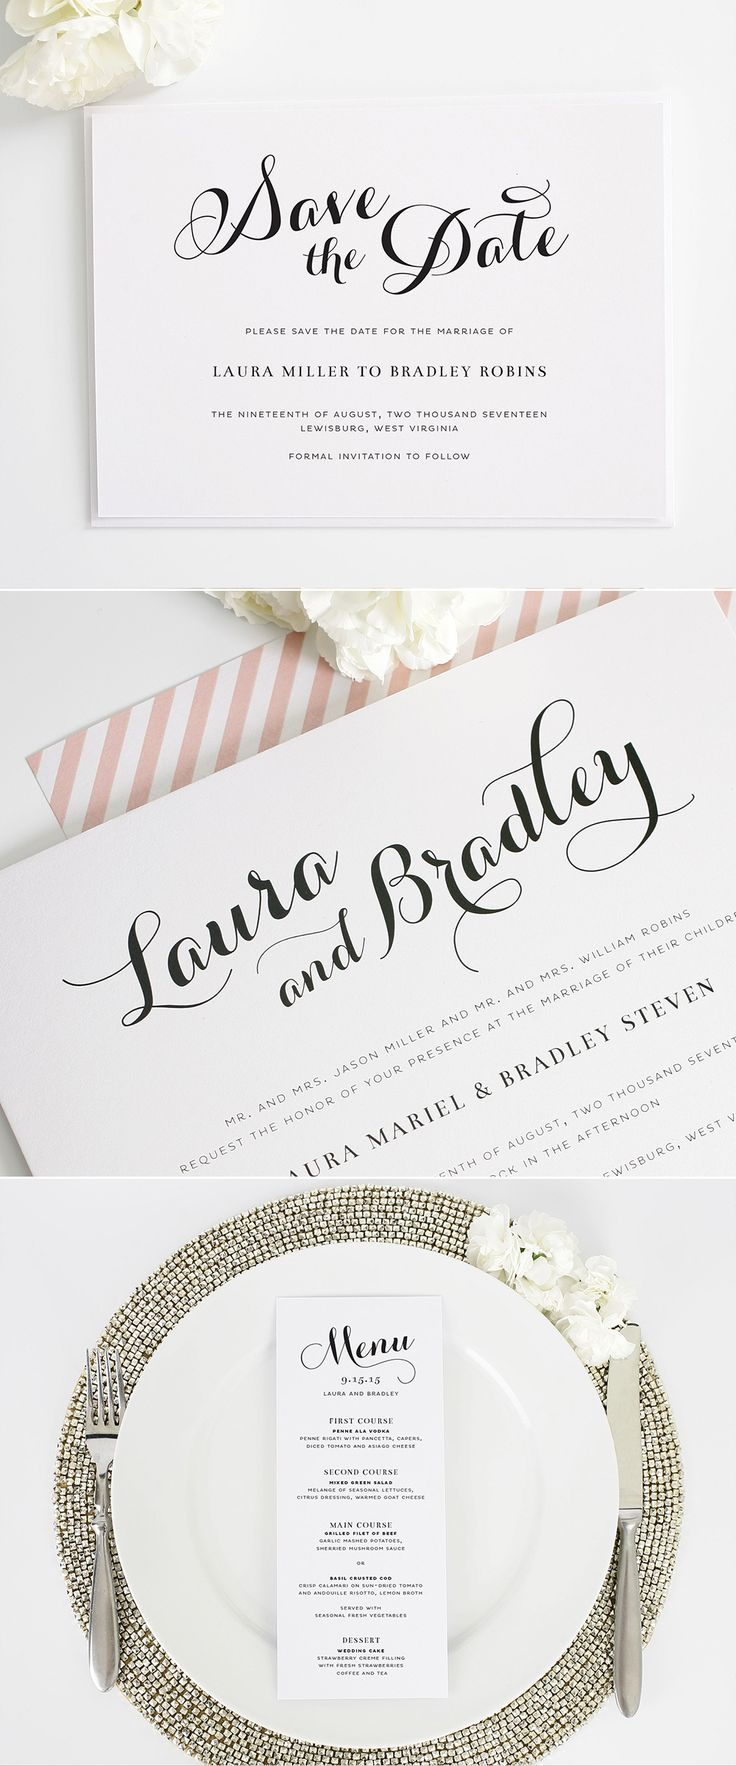 Romantic script invitation suite from Shine Wedding Invitations. #savethedates #menu http://www.shineweddinginvitations.com/wedding-invitations/romantic-script-wedding-invitations